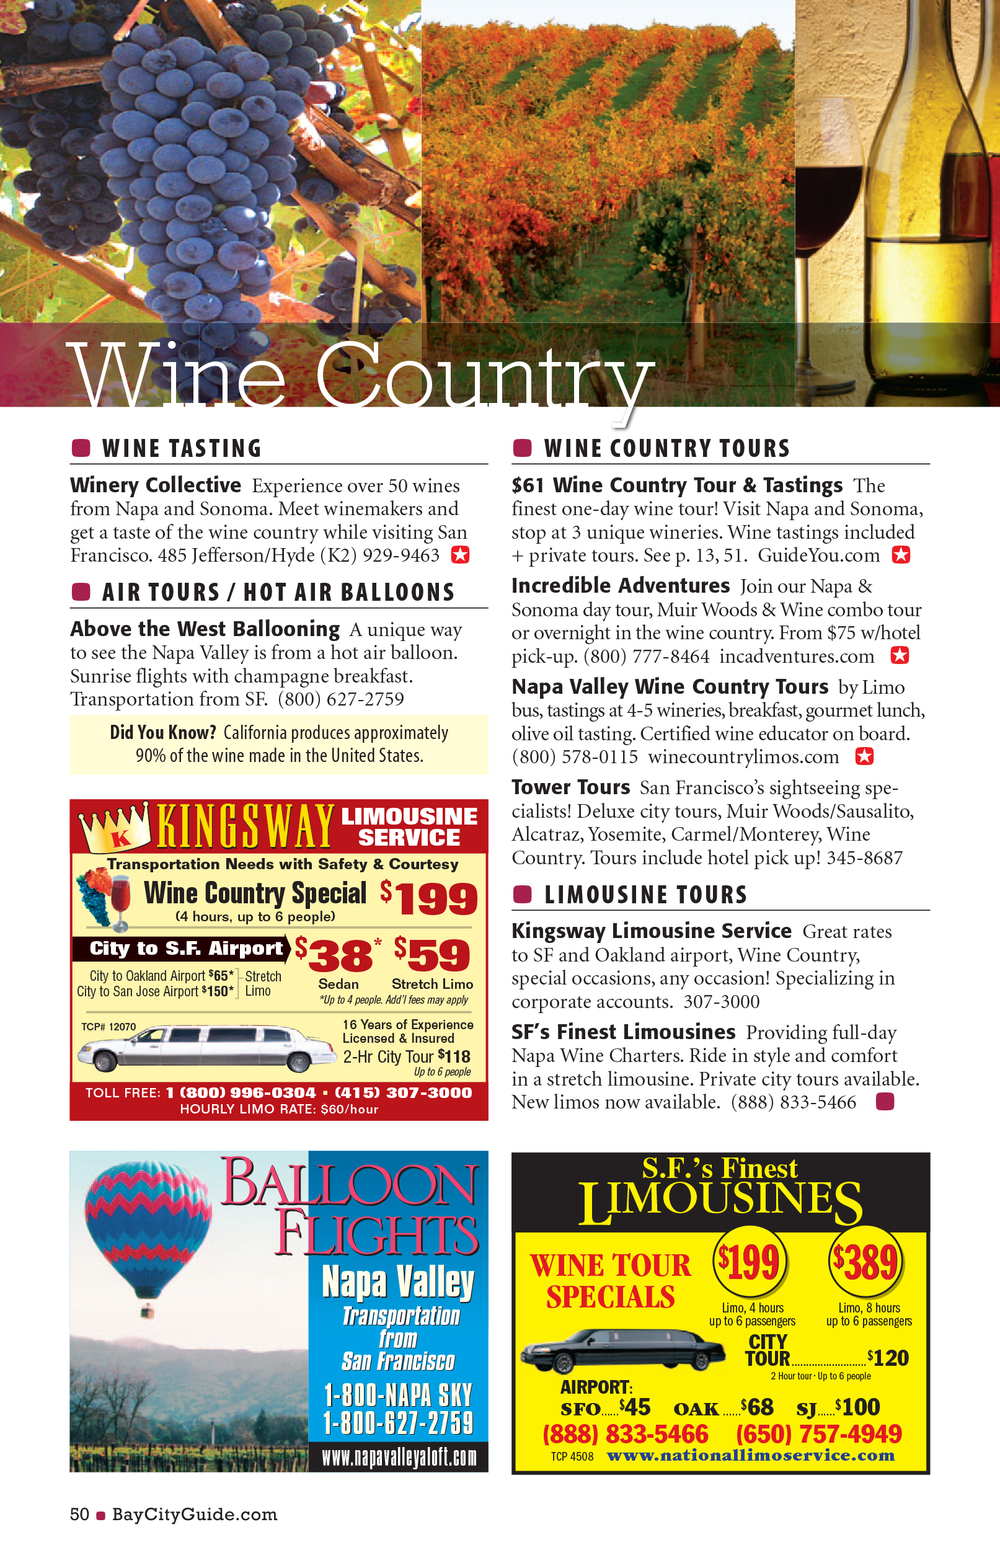 Bay City Guide magazine - Wine Country